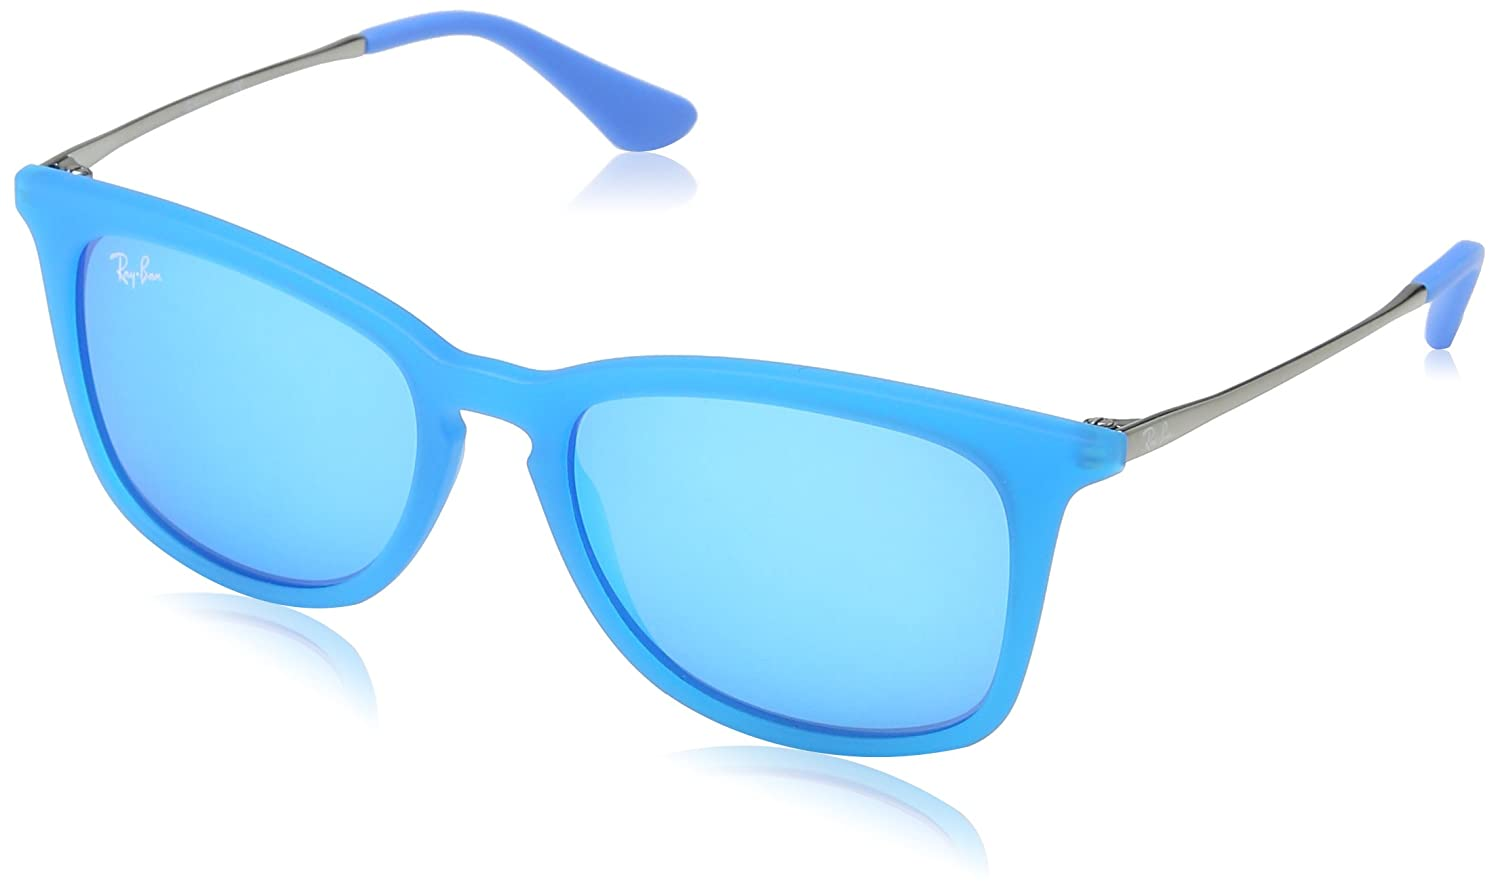 bd7b619e5 Amazon.com: Ray-Ban Kids' Injected Unisex Sunglass Square, Azure Fluo Trasp  Rubber 701155 48 mm: Clothing